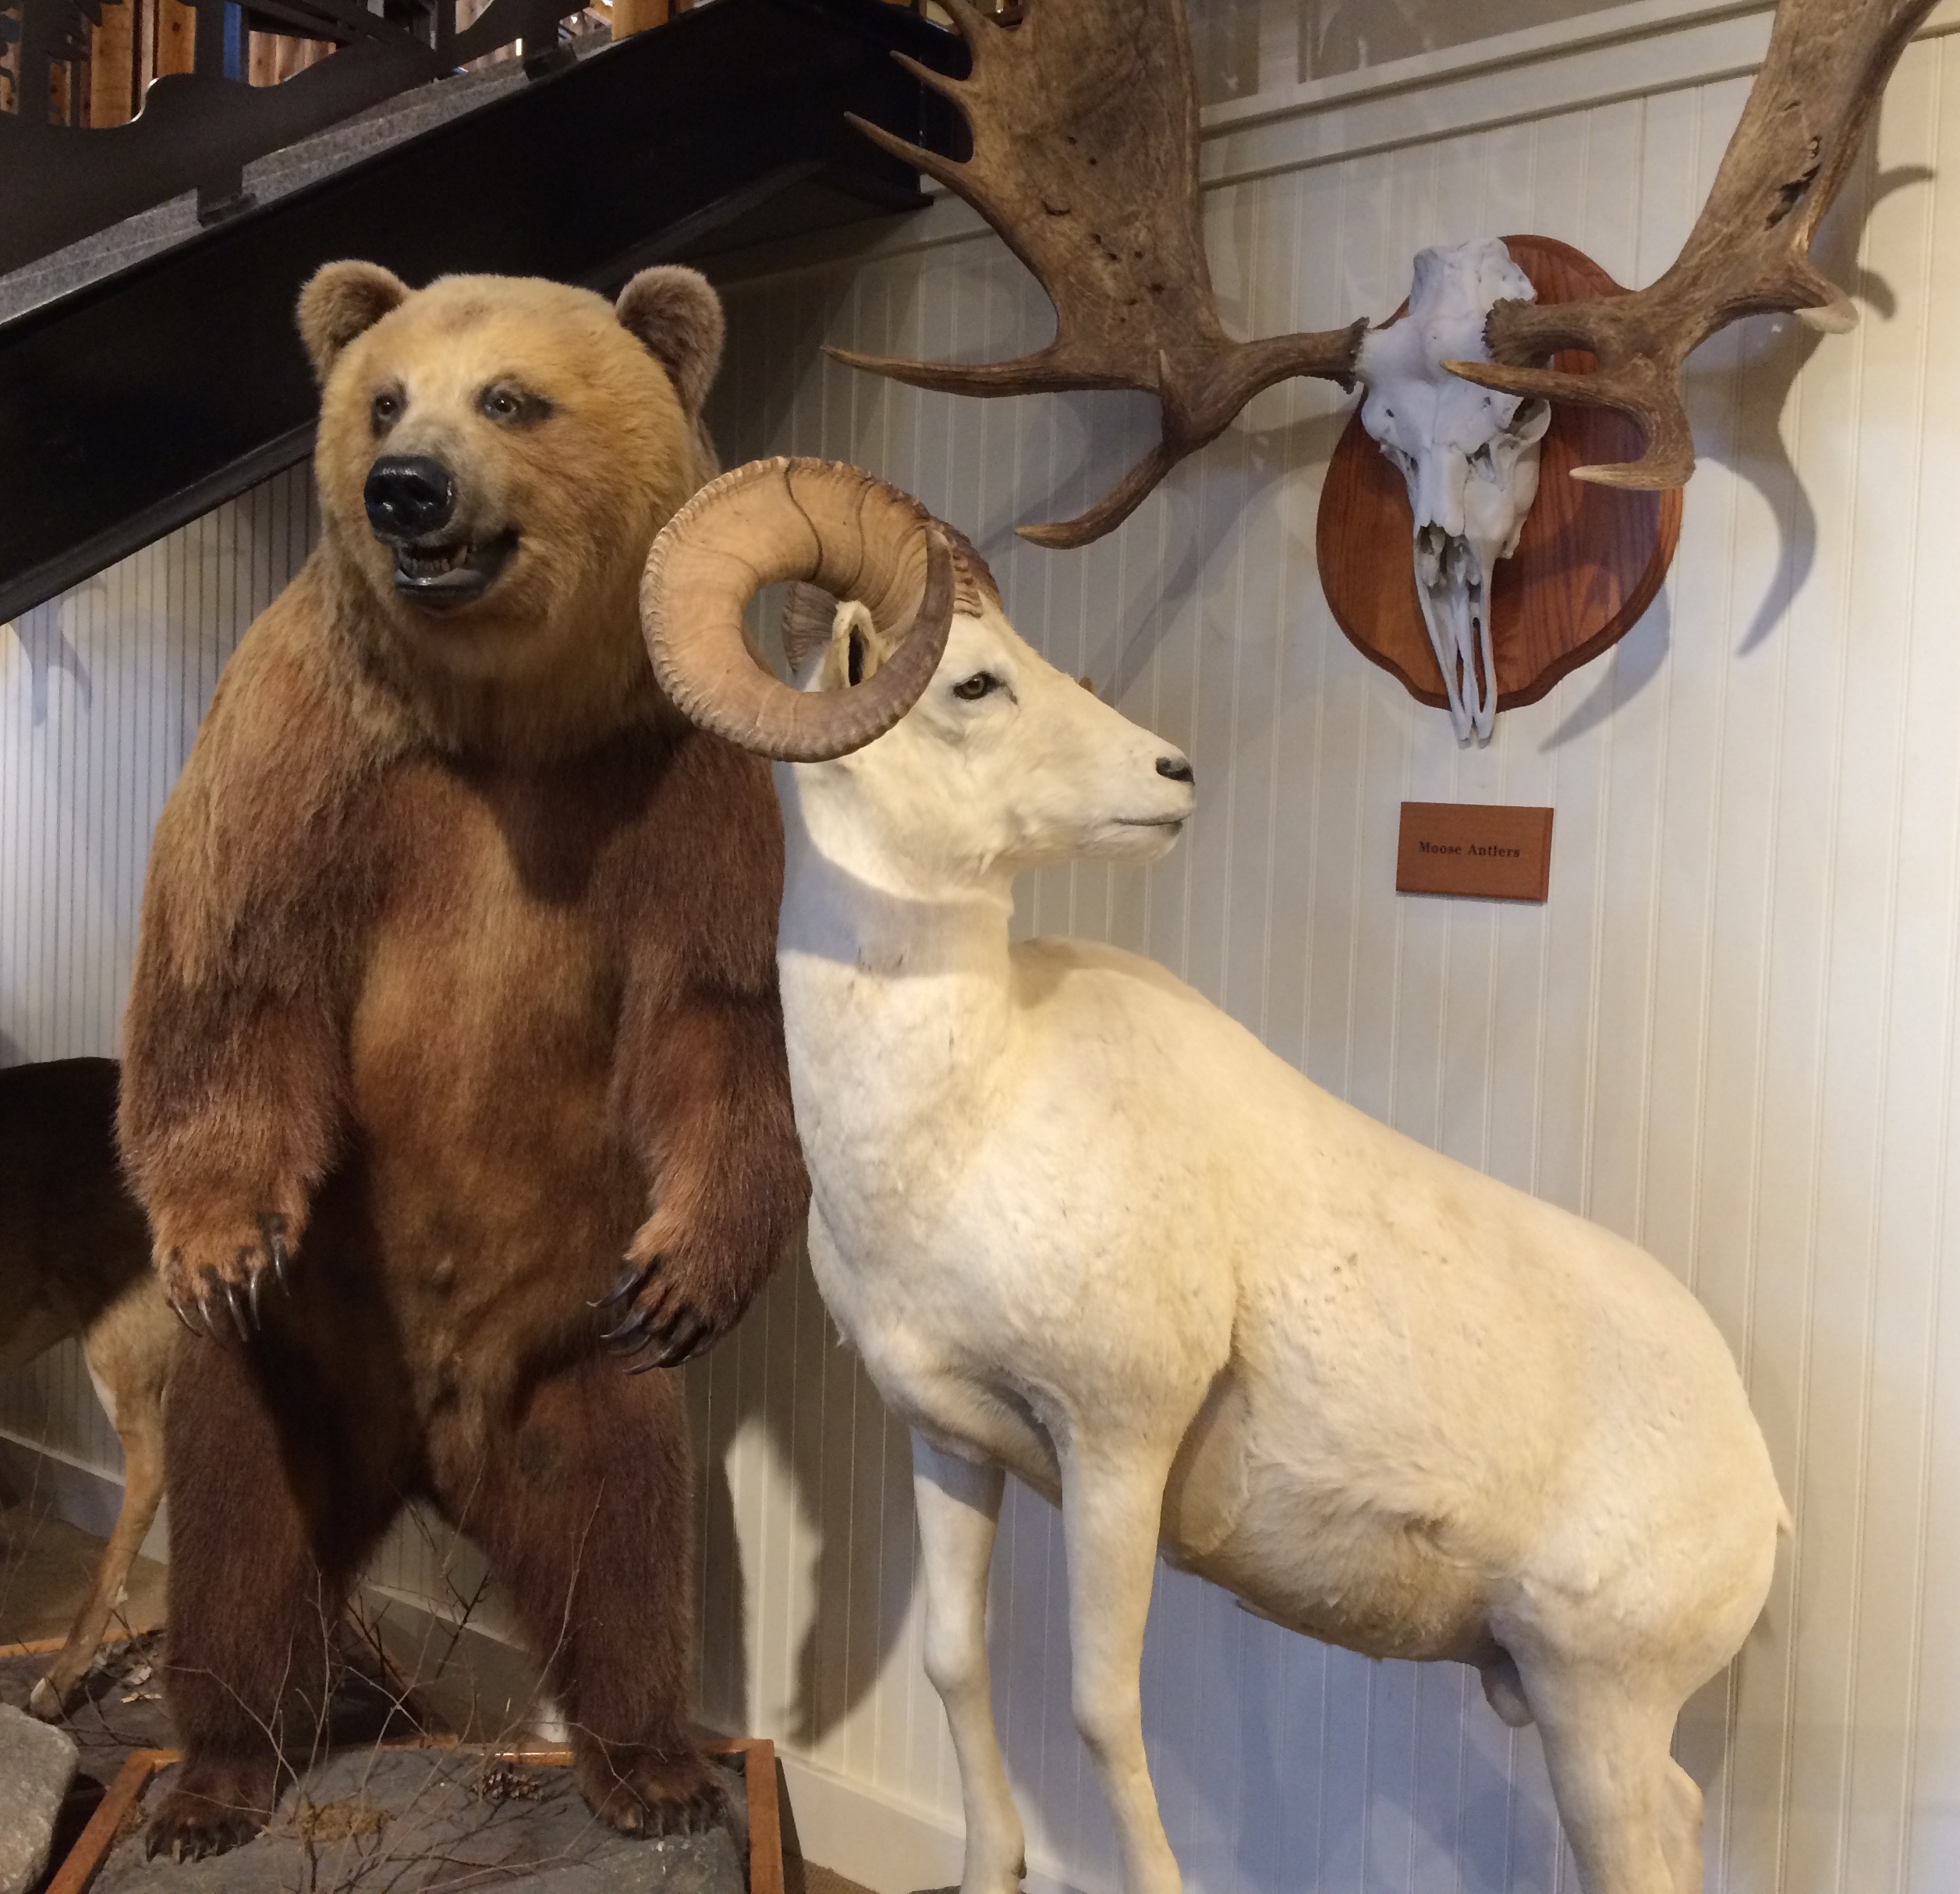 Diorama with bear